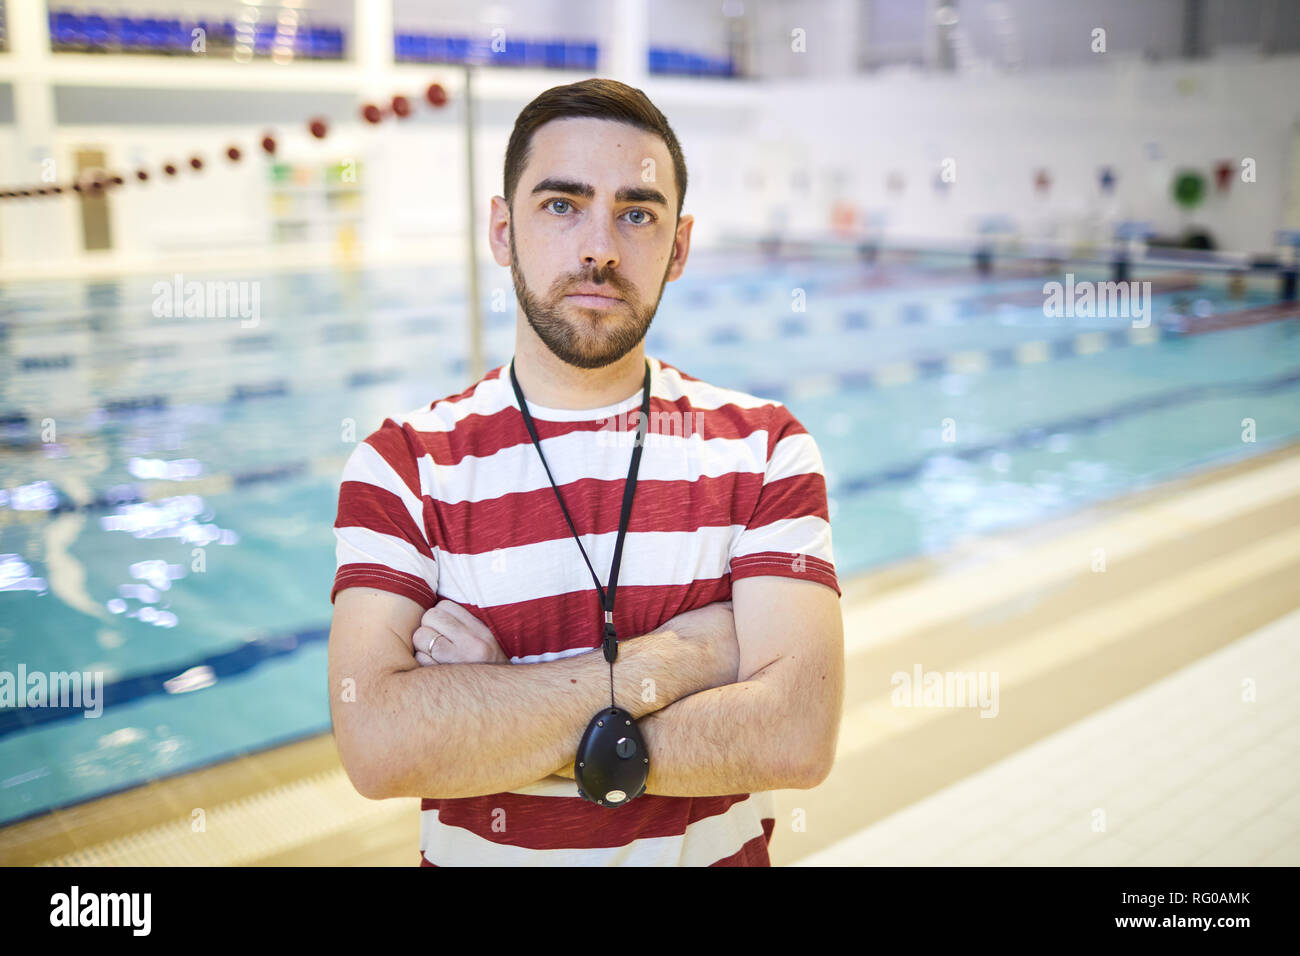 Young trainer standing in the pool - Stock Image